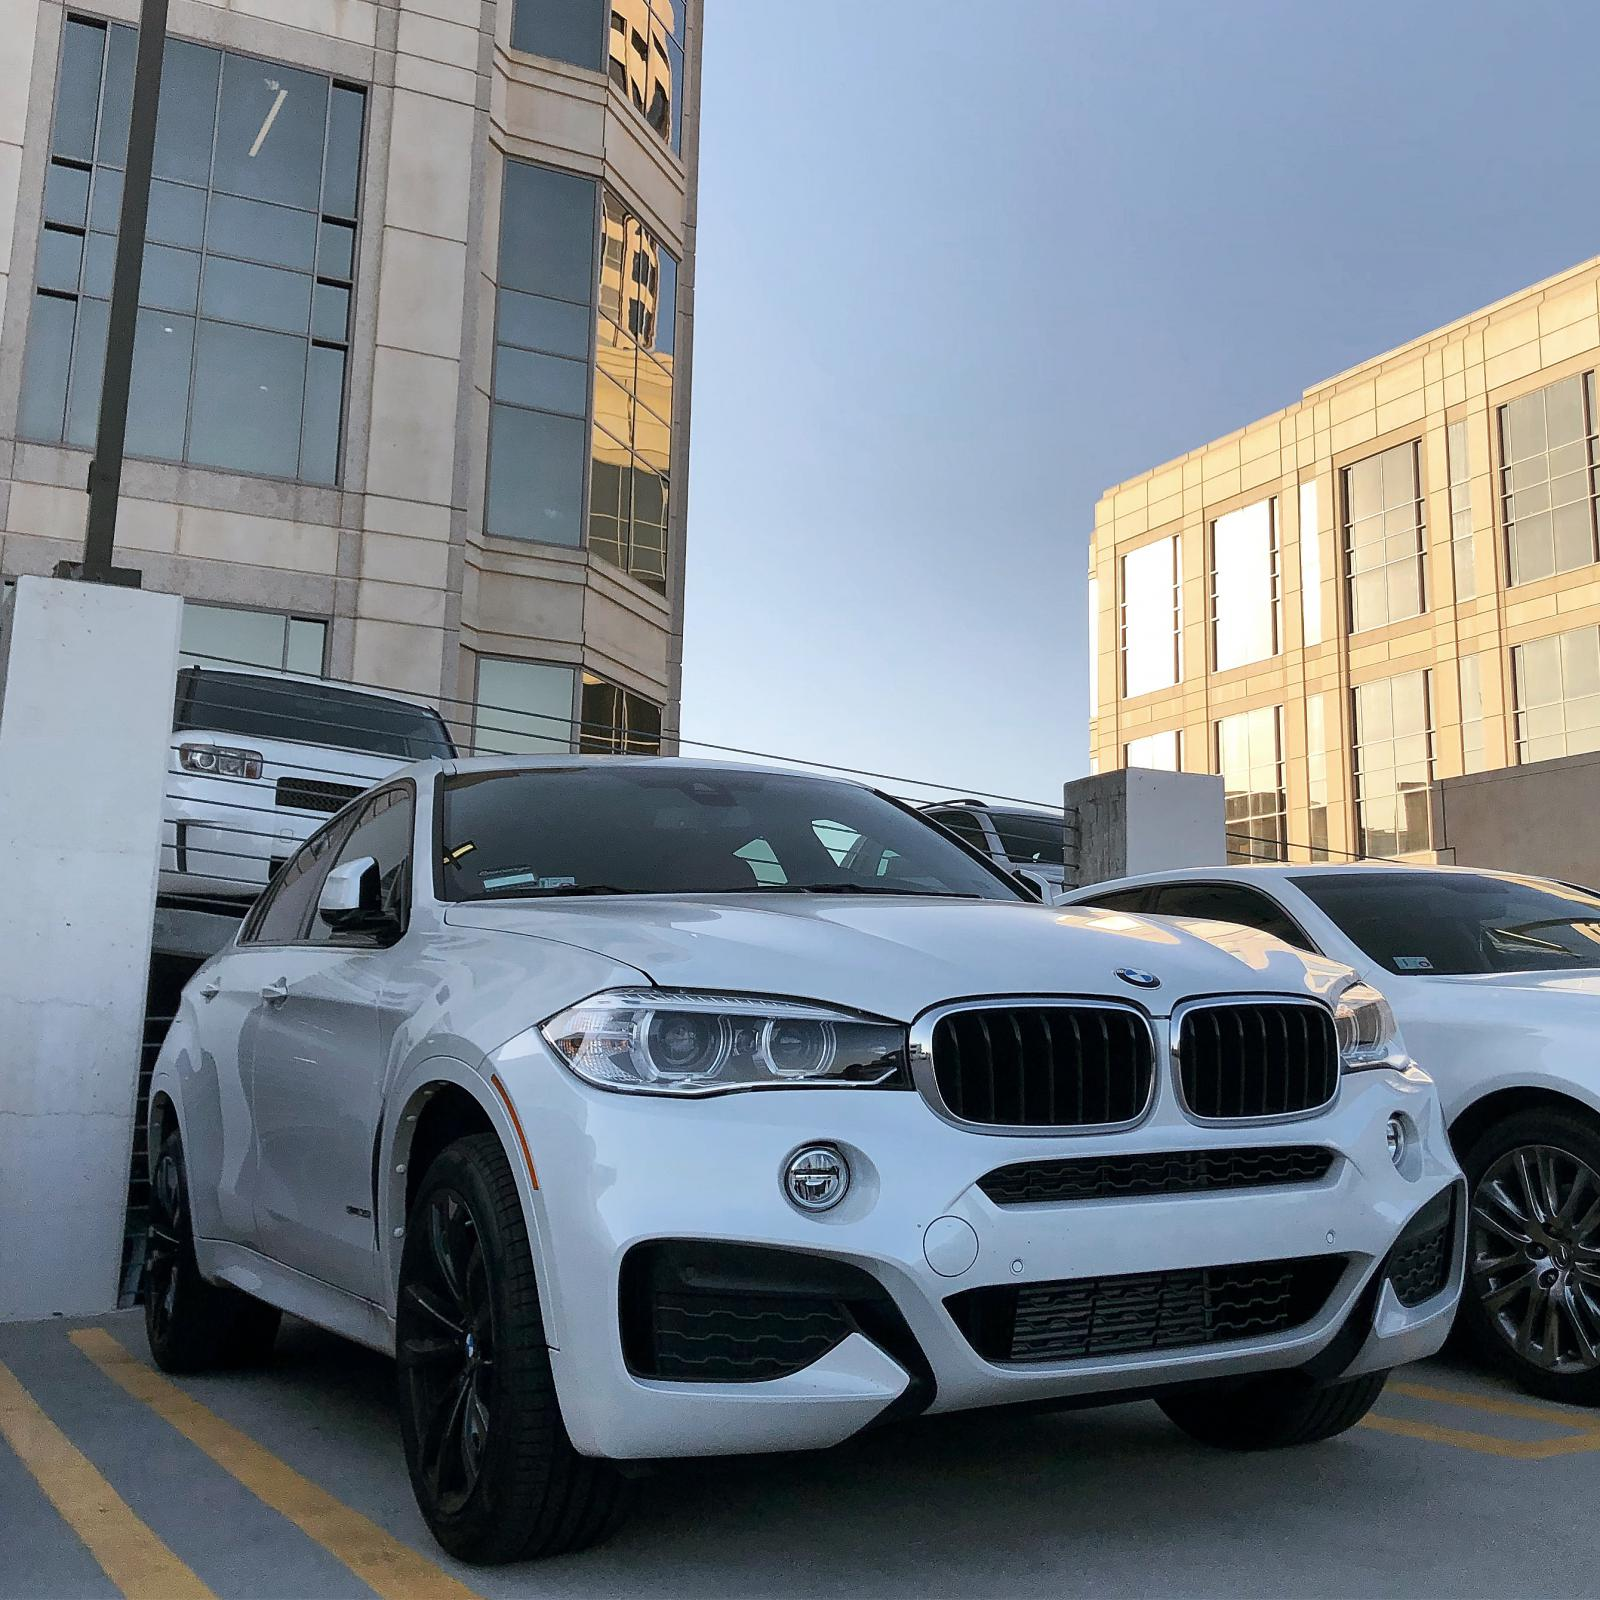 Lease Takeover: '19 BMW X6 MW/Coral Red (SoCal